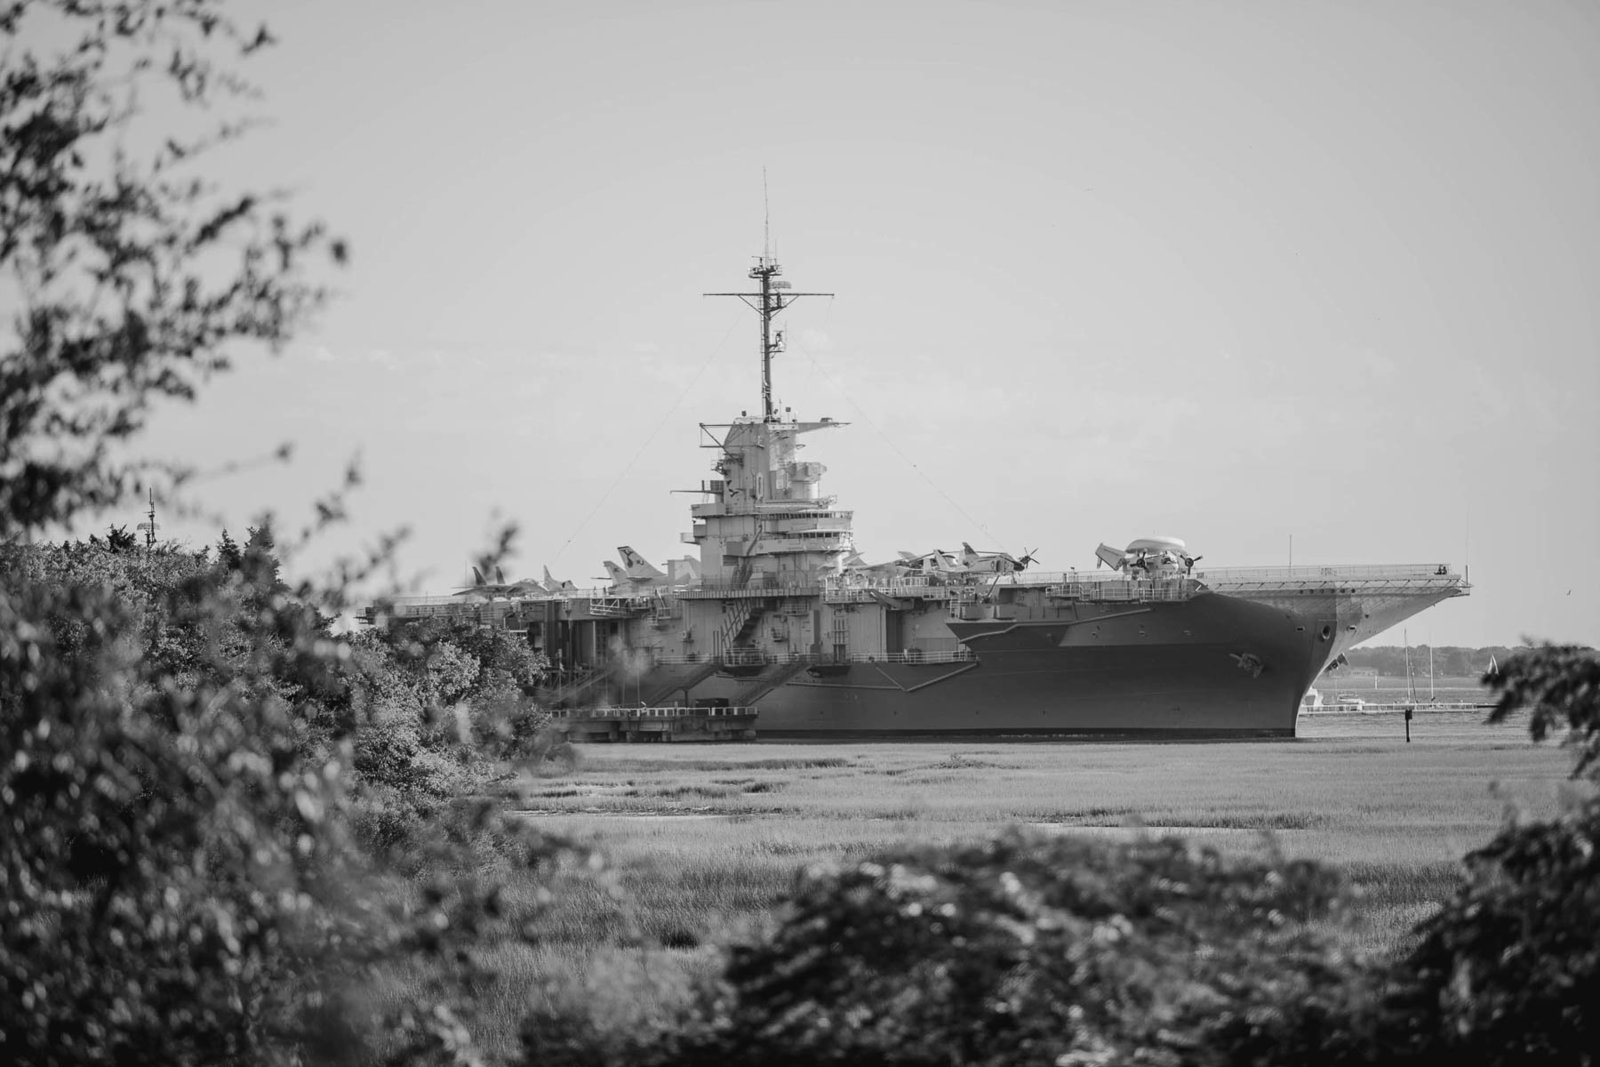 Uss Yorktown can be seen from ceremony site, Harborside East, Mt Pleasant, South Carolina